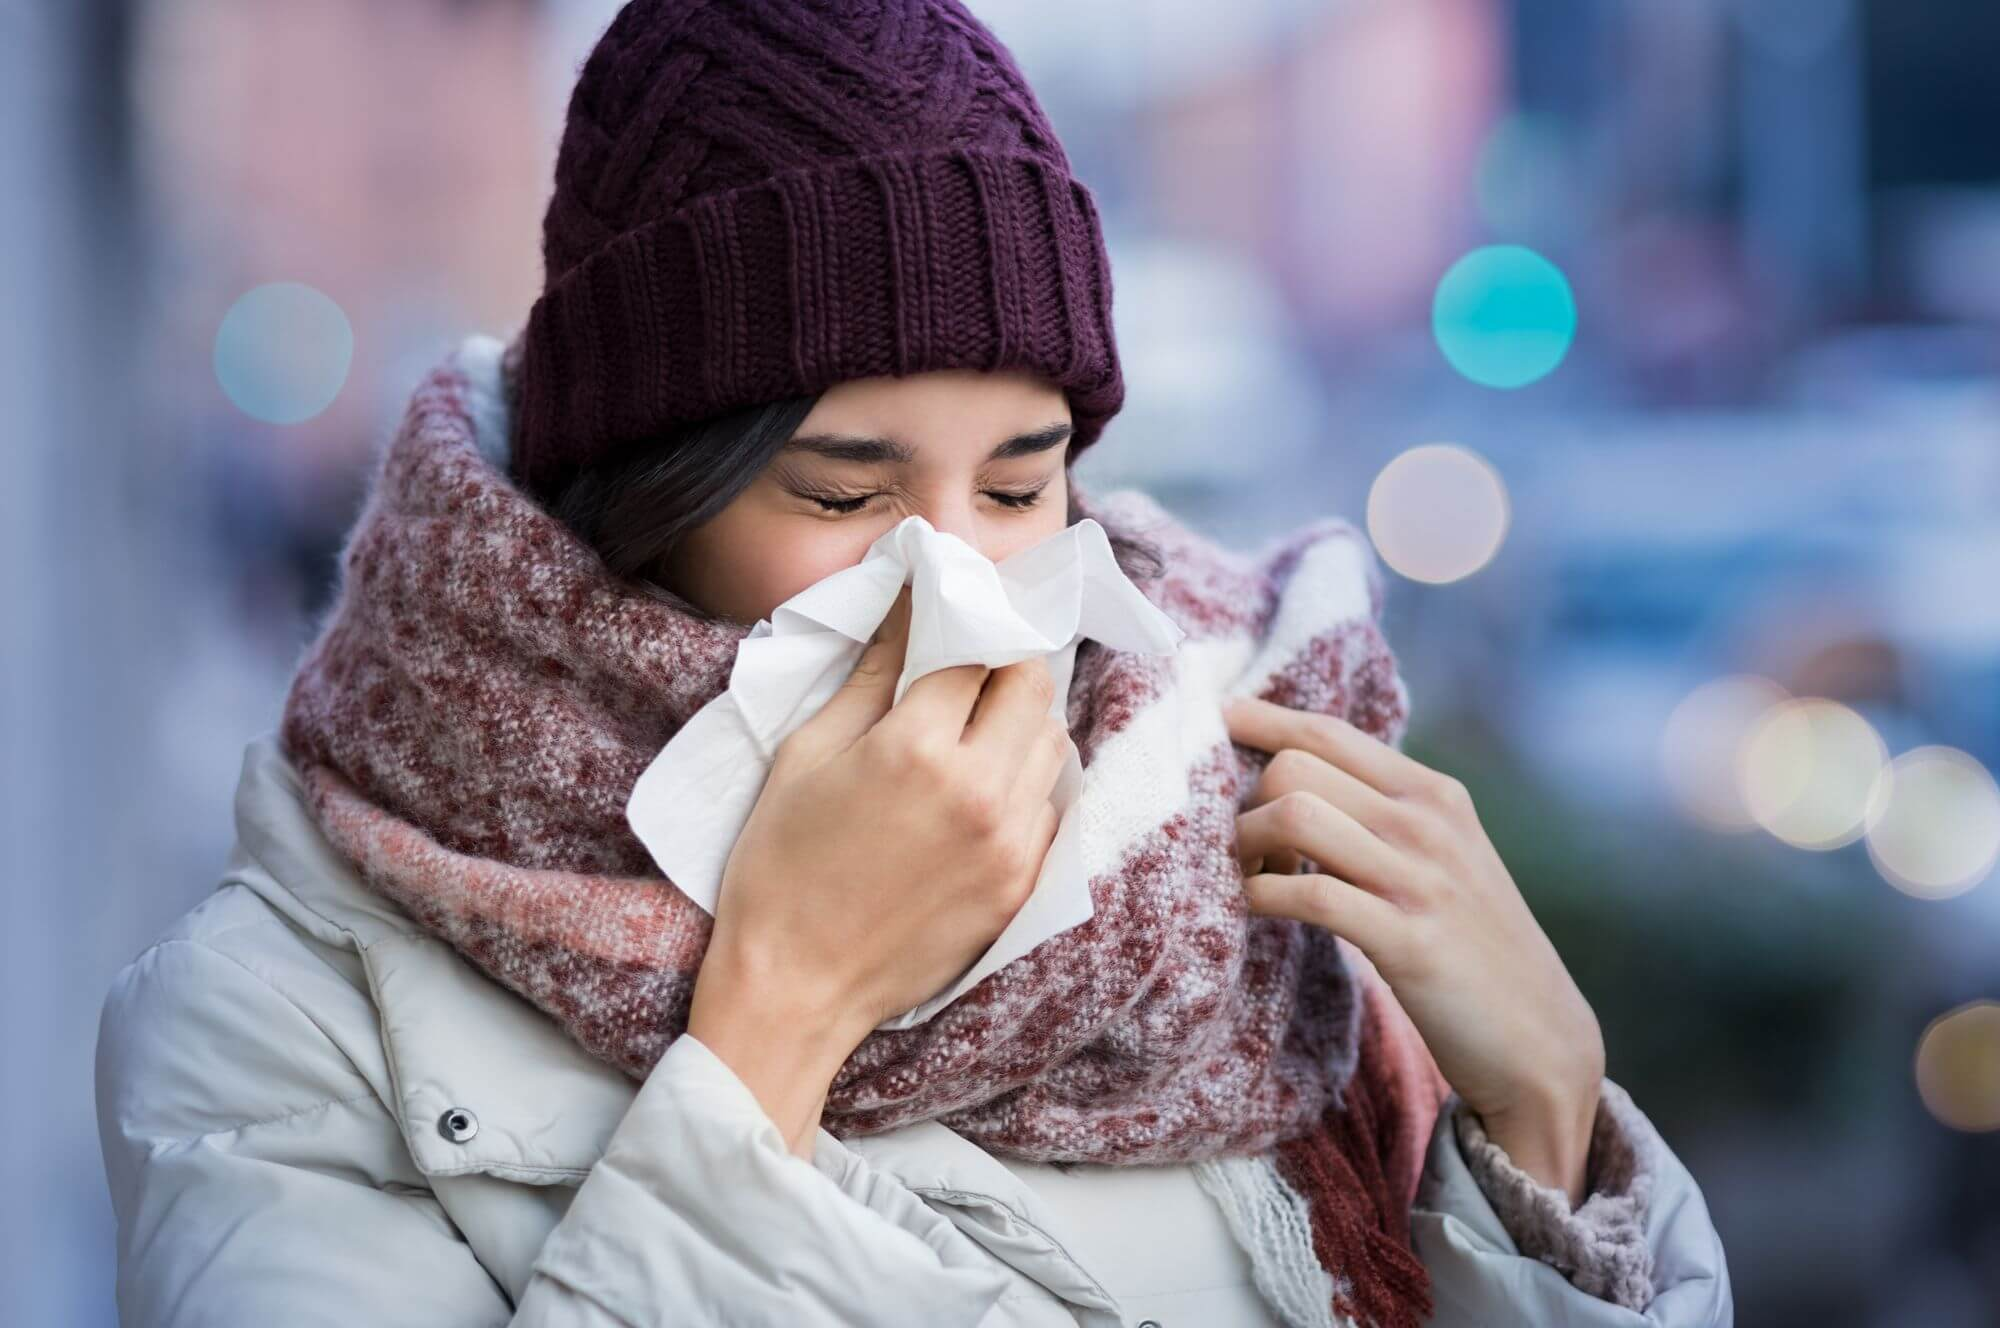 Is it possible to catch a cold from the cold?